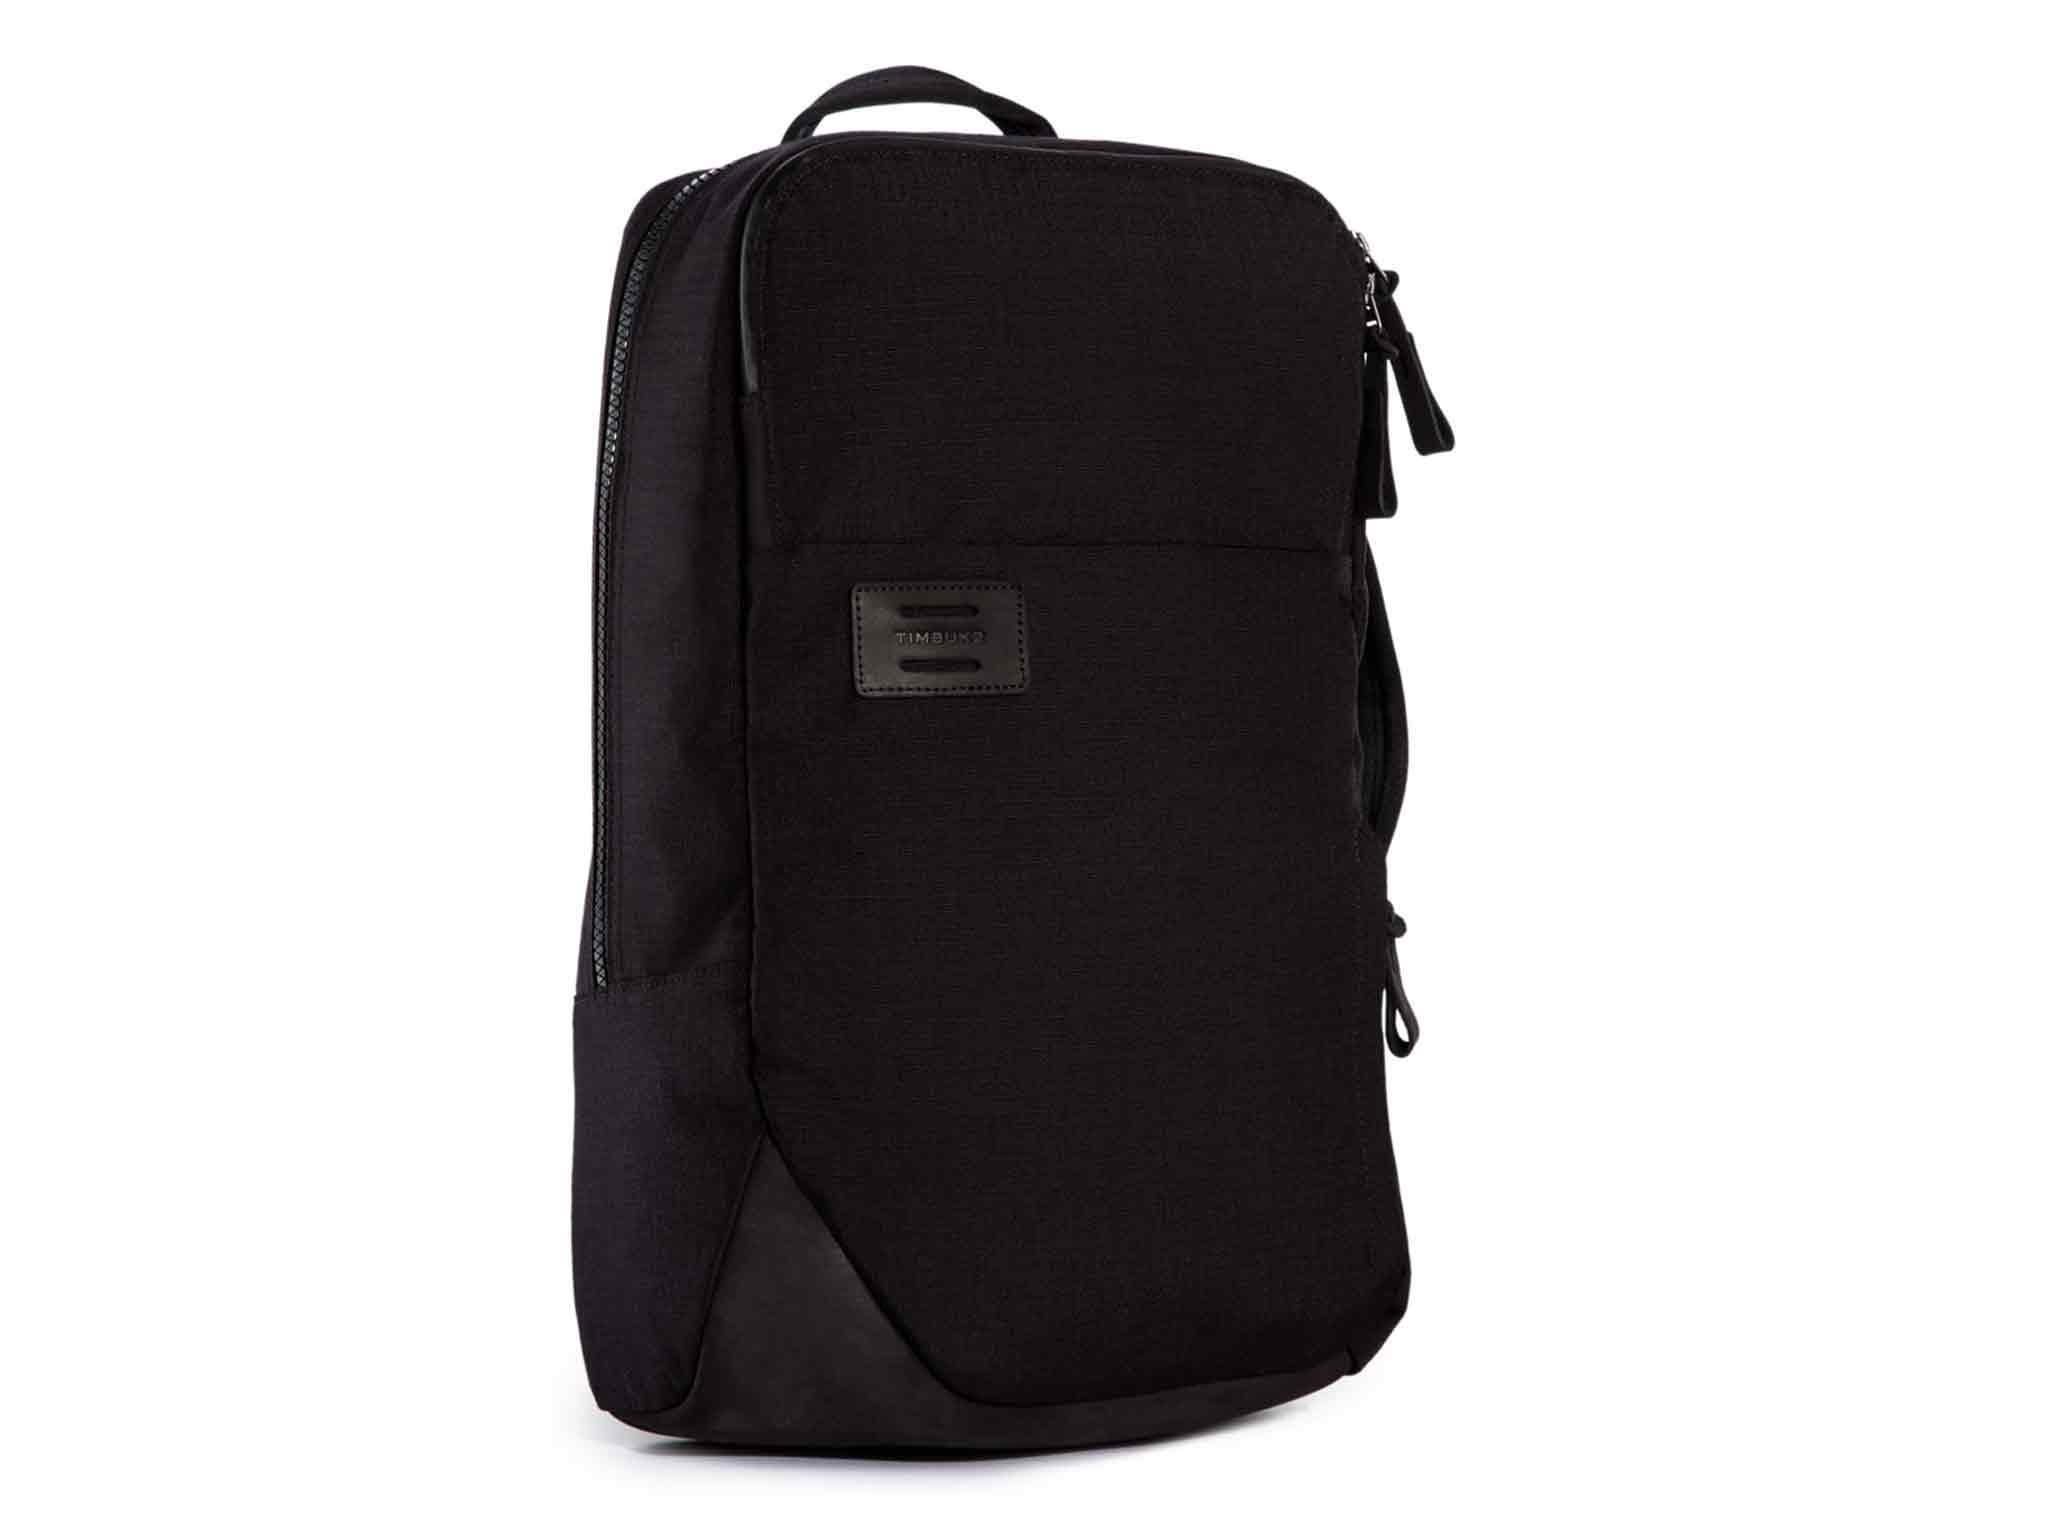 11 best cycling bags for commuters  40c0290ae96be